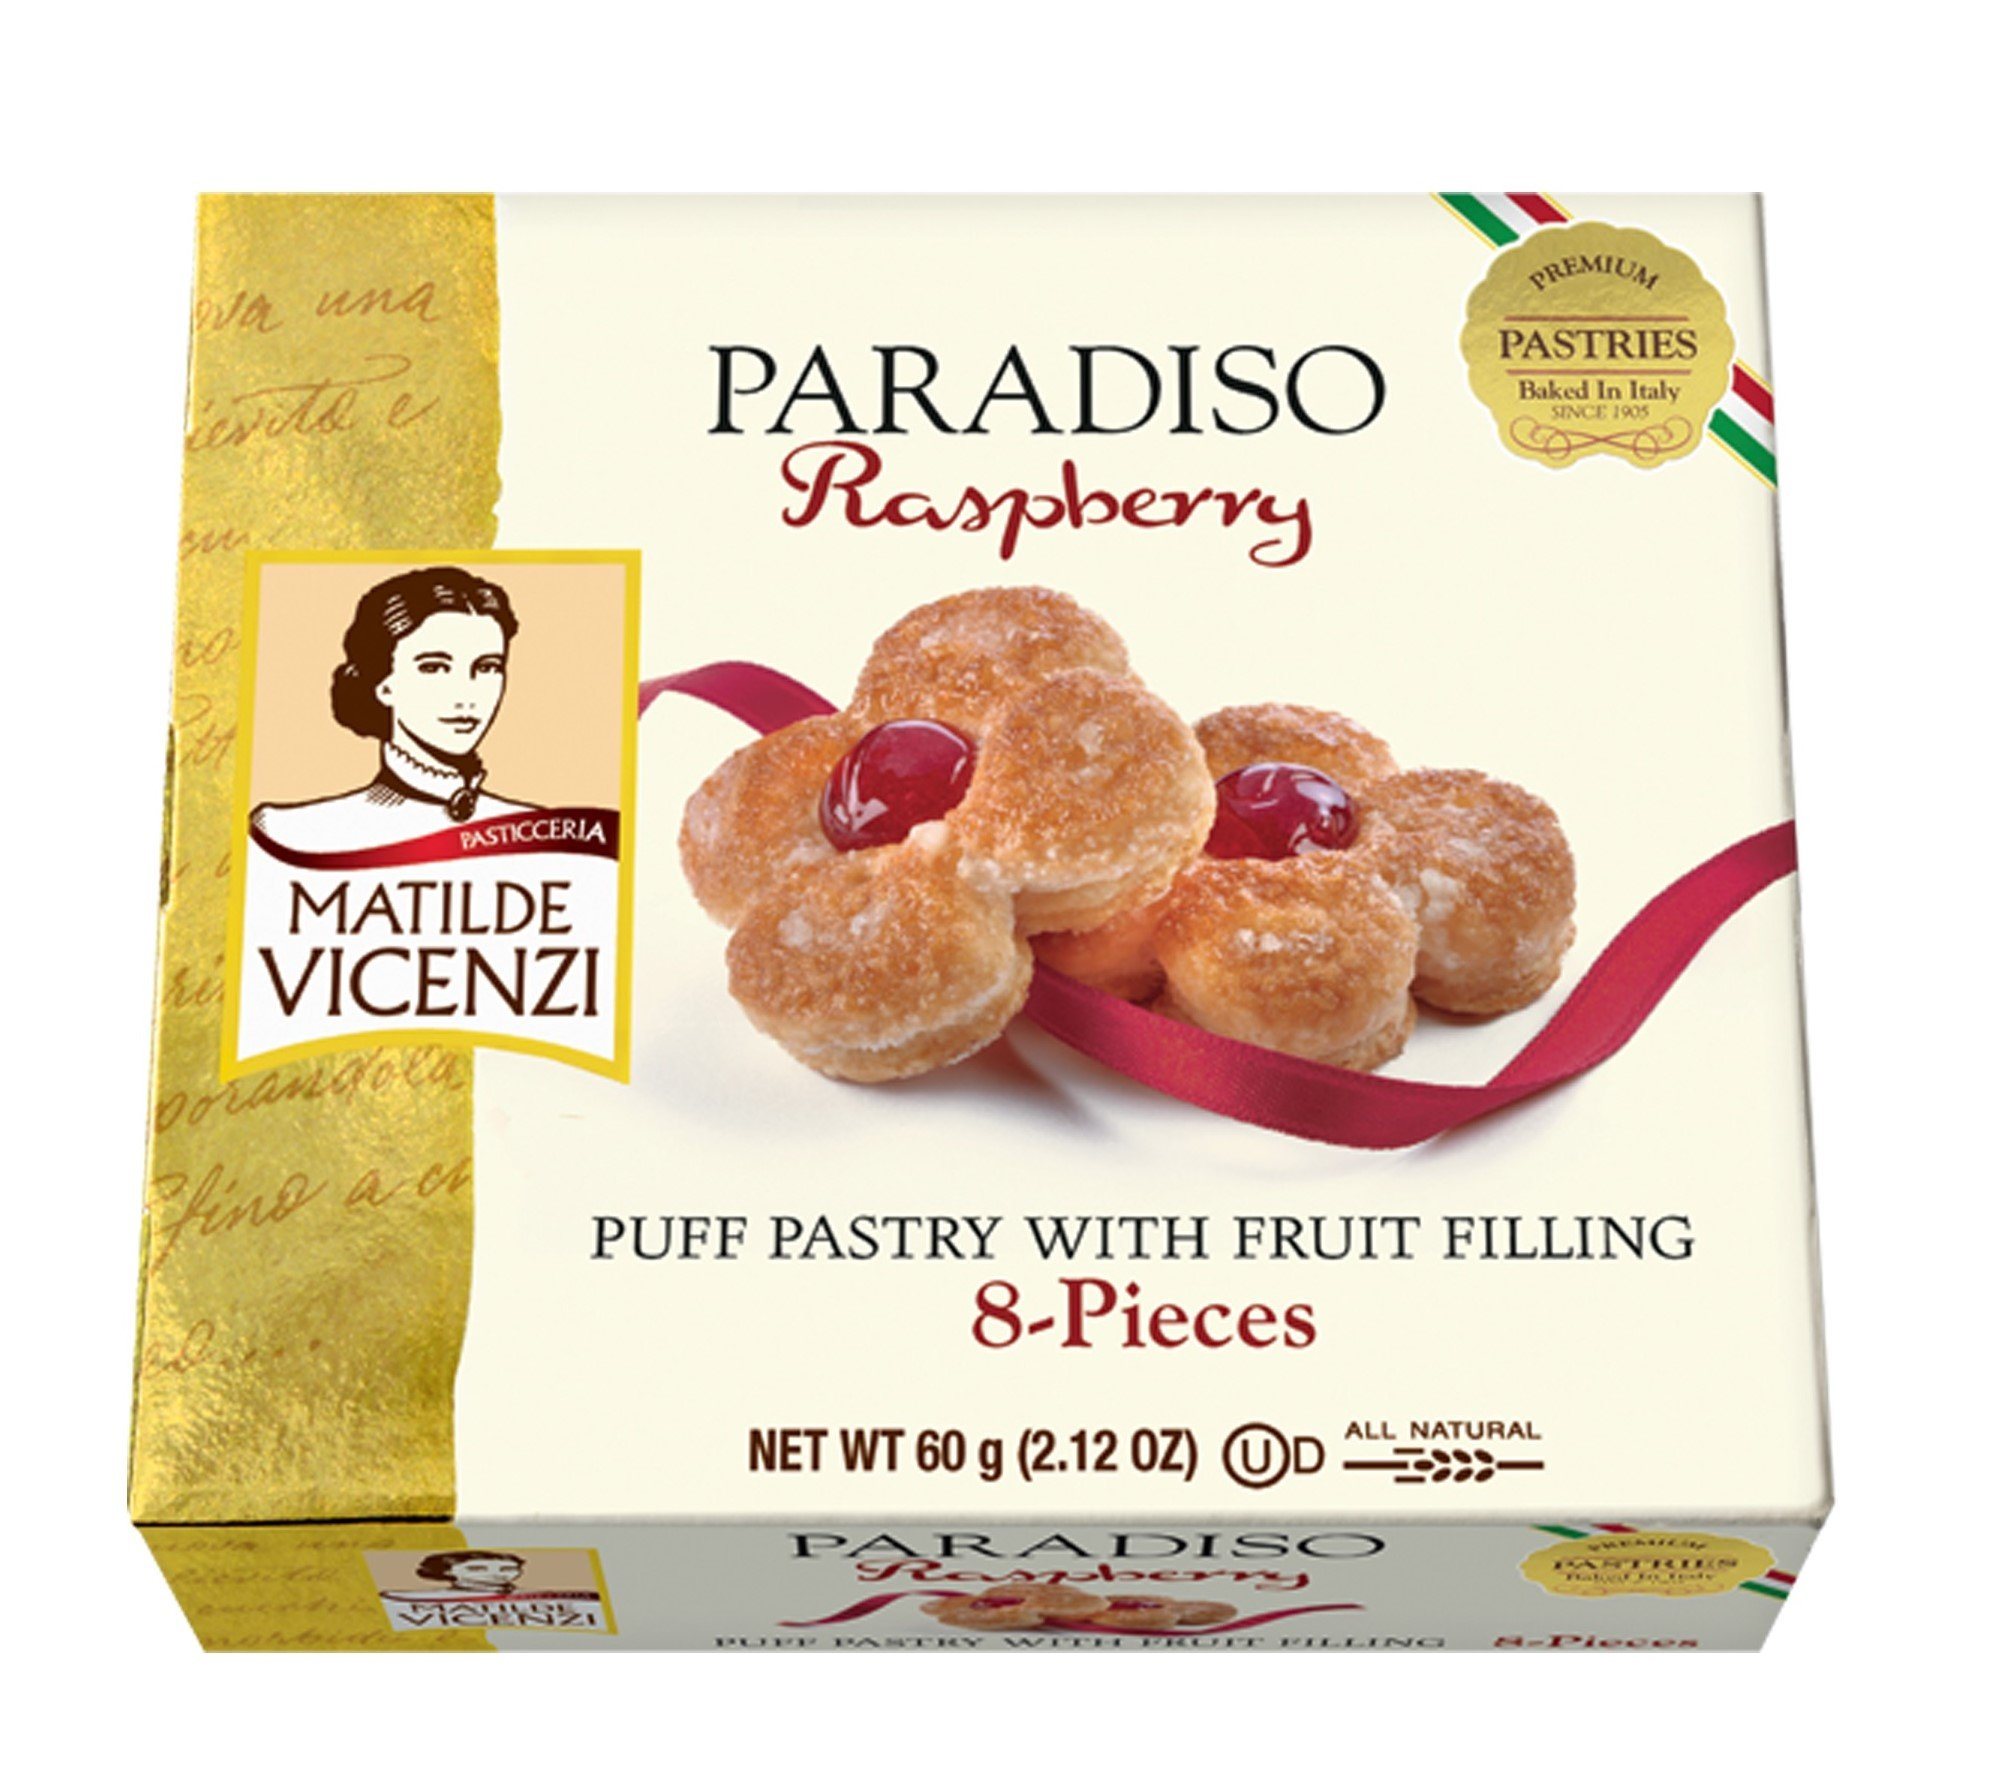 Matilde Vicenzi, PARADISO Raspberry, Puff Pastry with Fruit Filling, 2.12 oz, Pack of 6